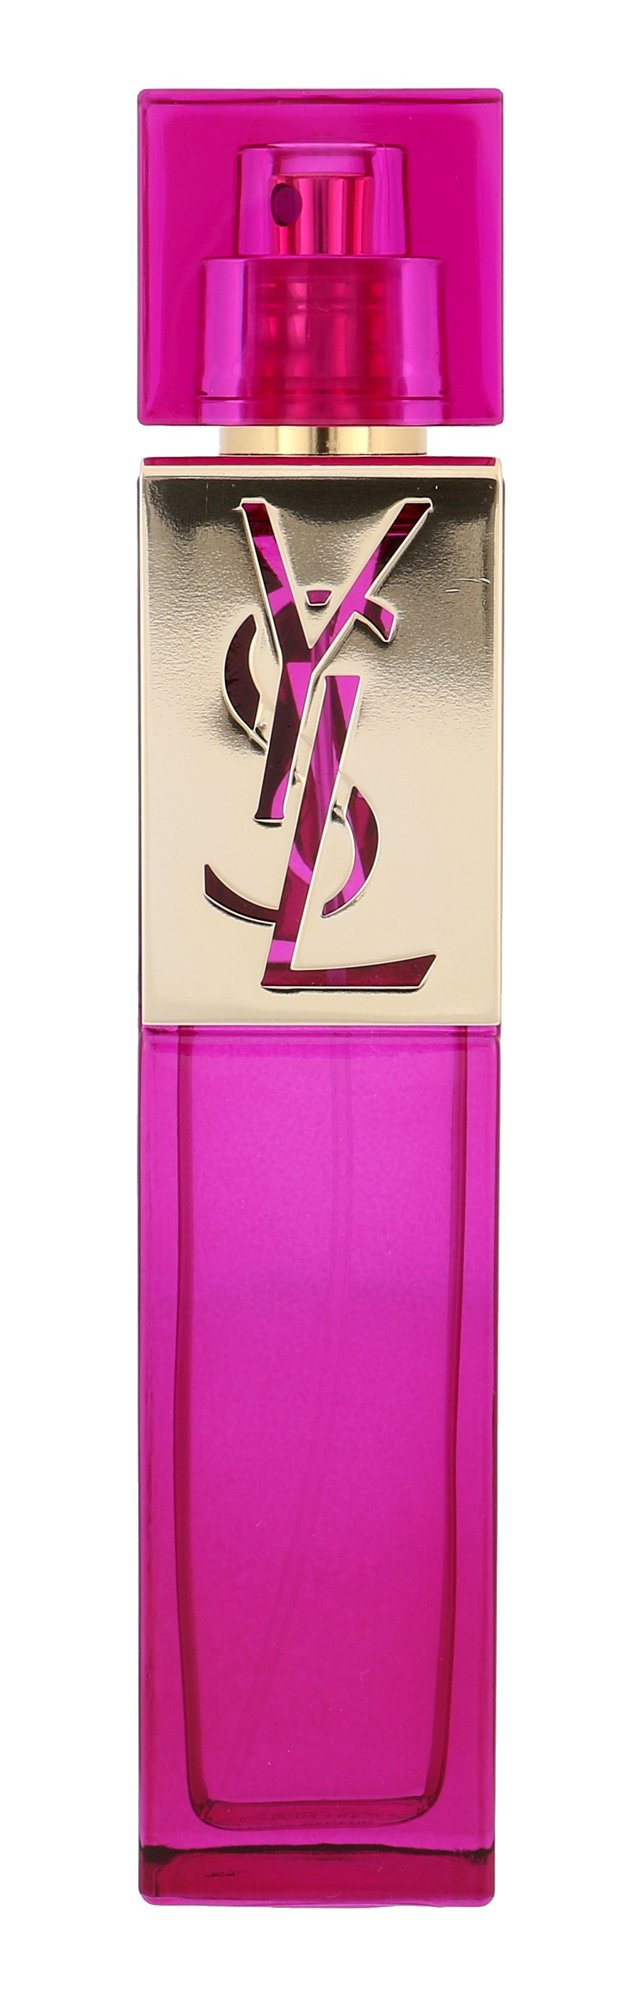 Yves Saint Laurent Elle EDP 50ml